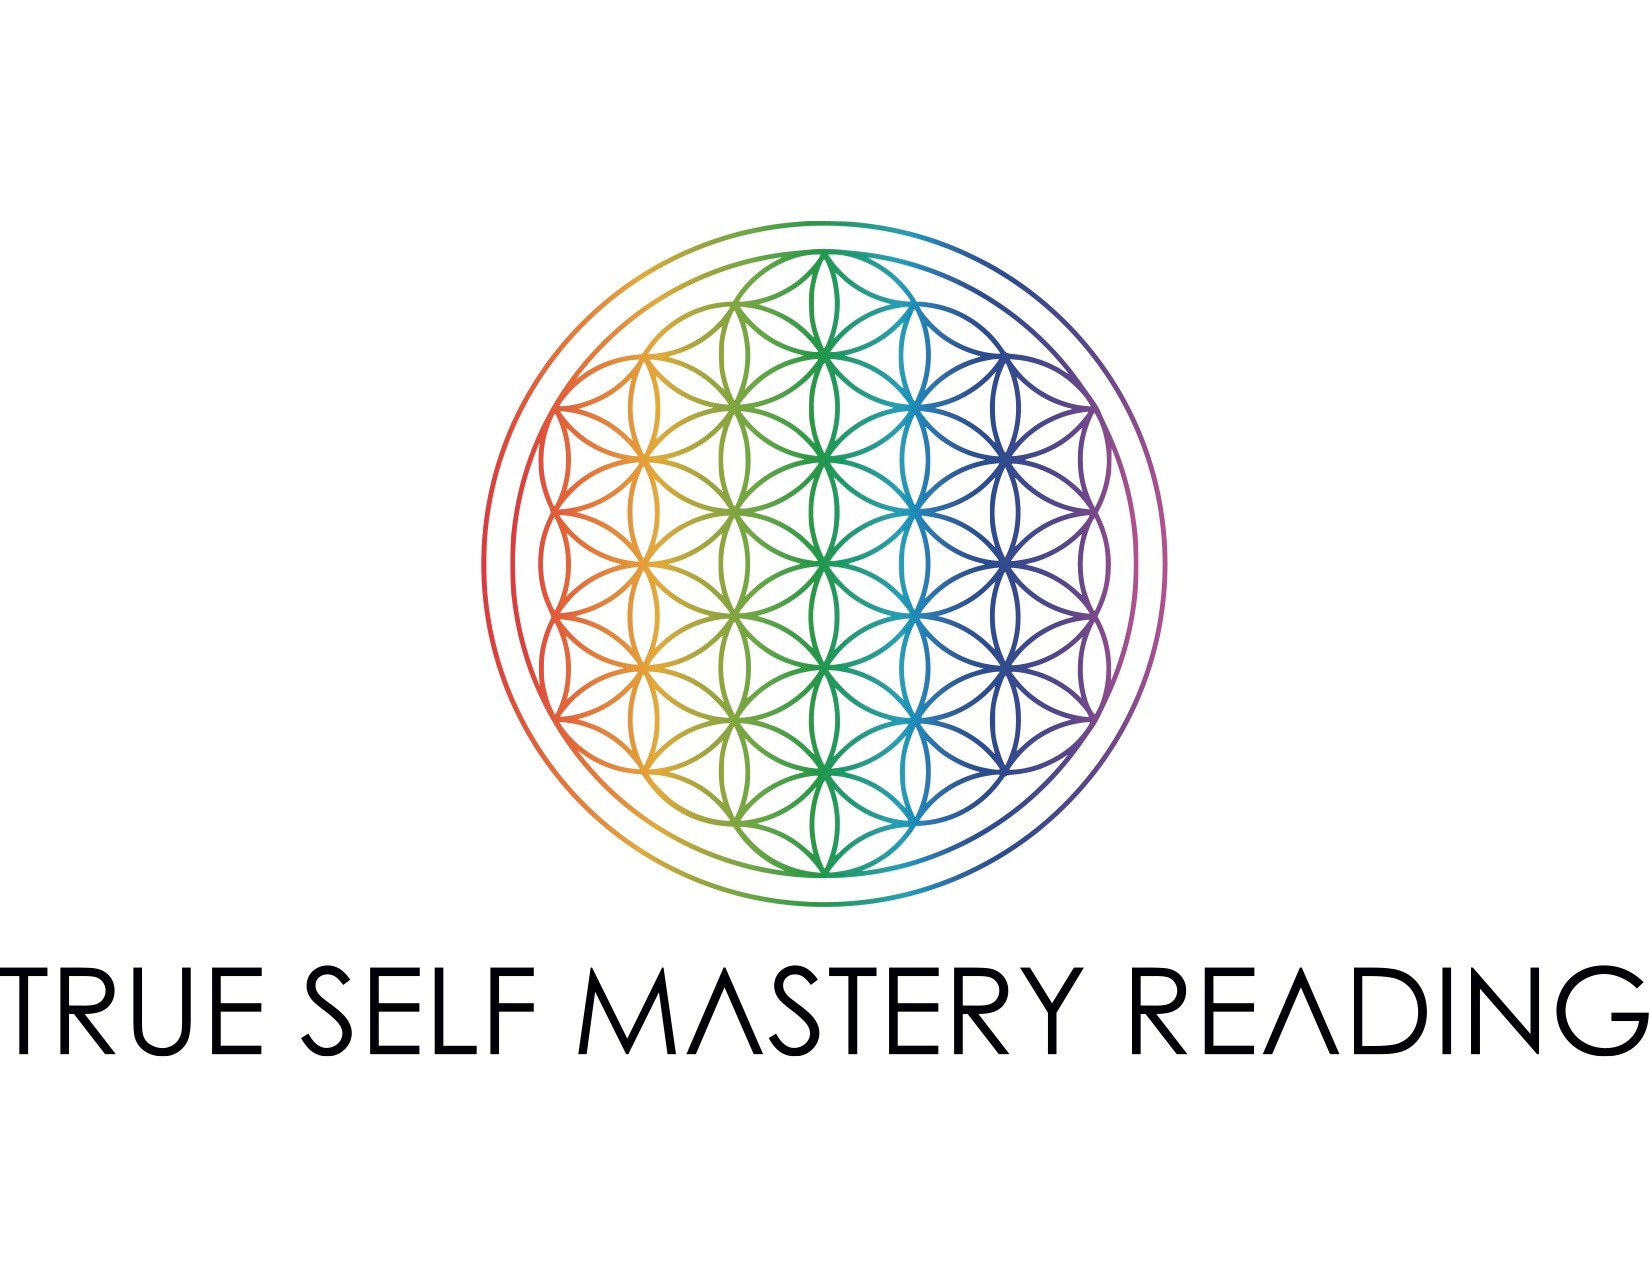 TRUE SELF MASTERY READINGS